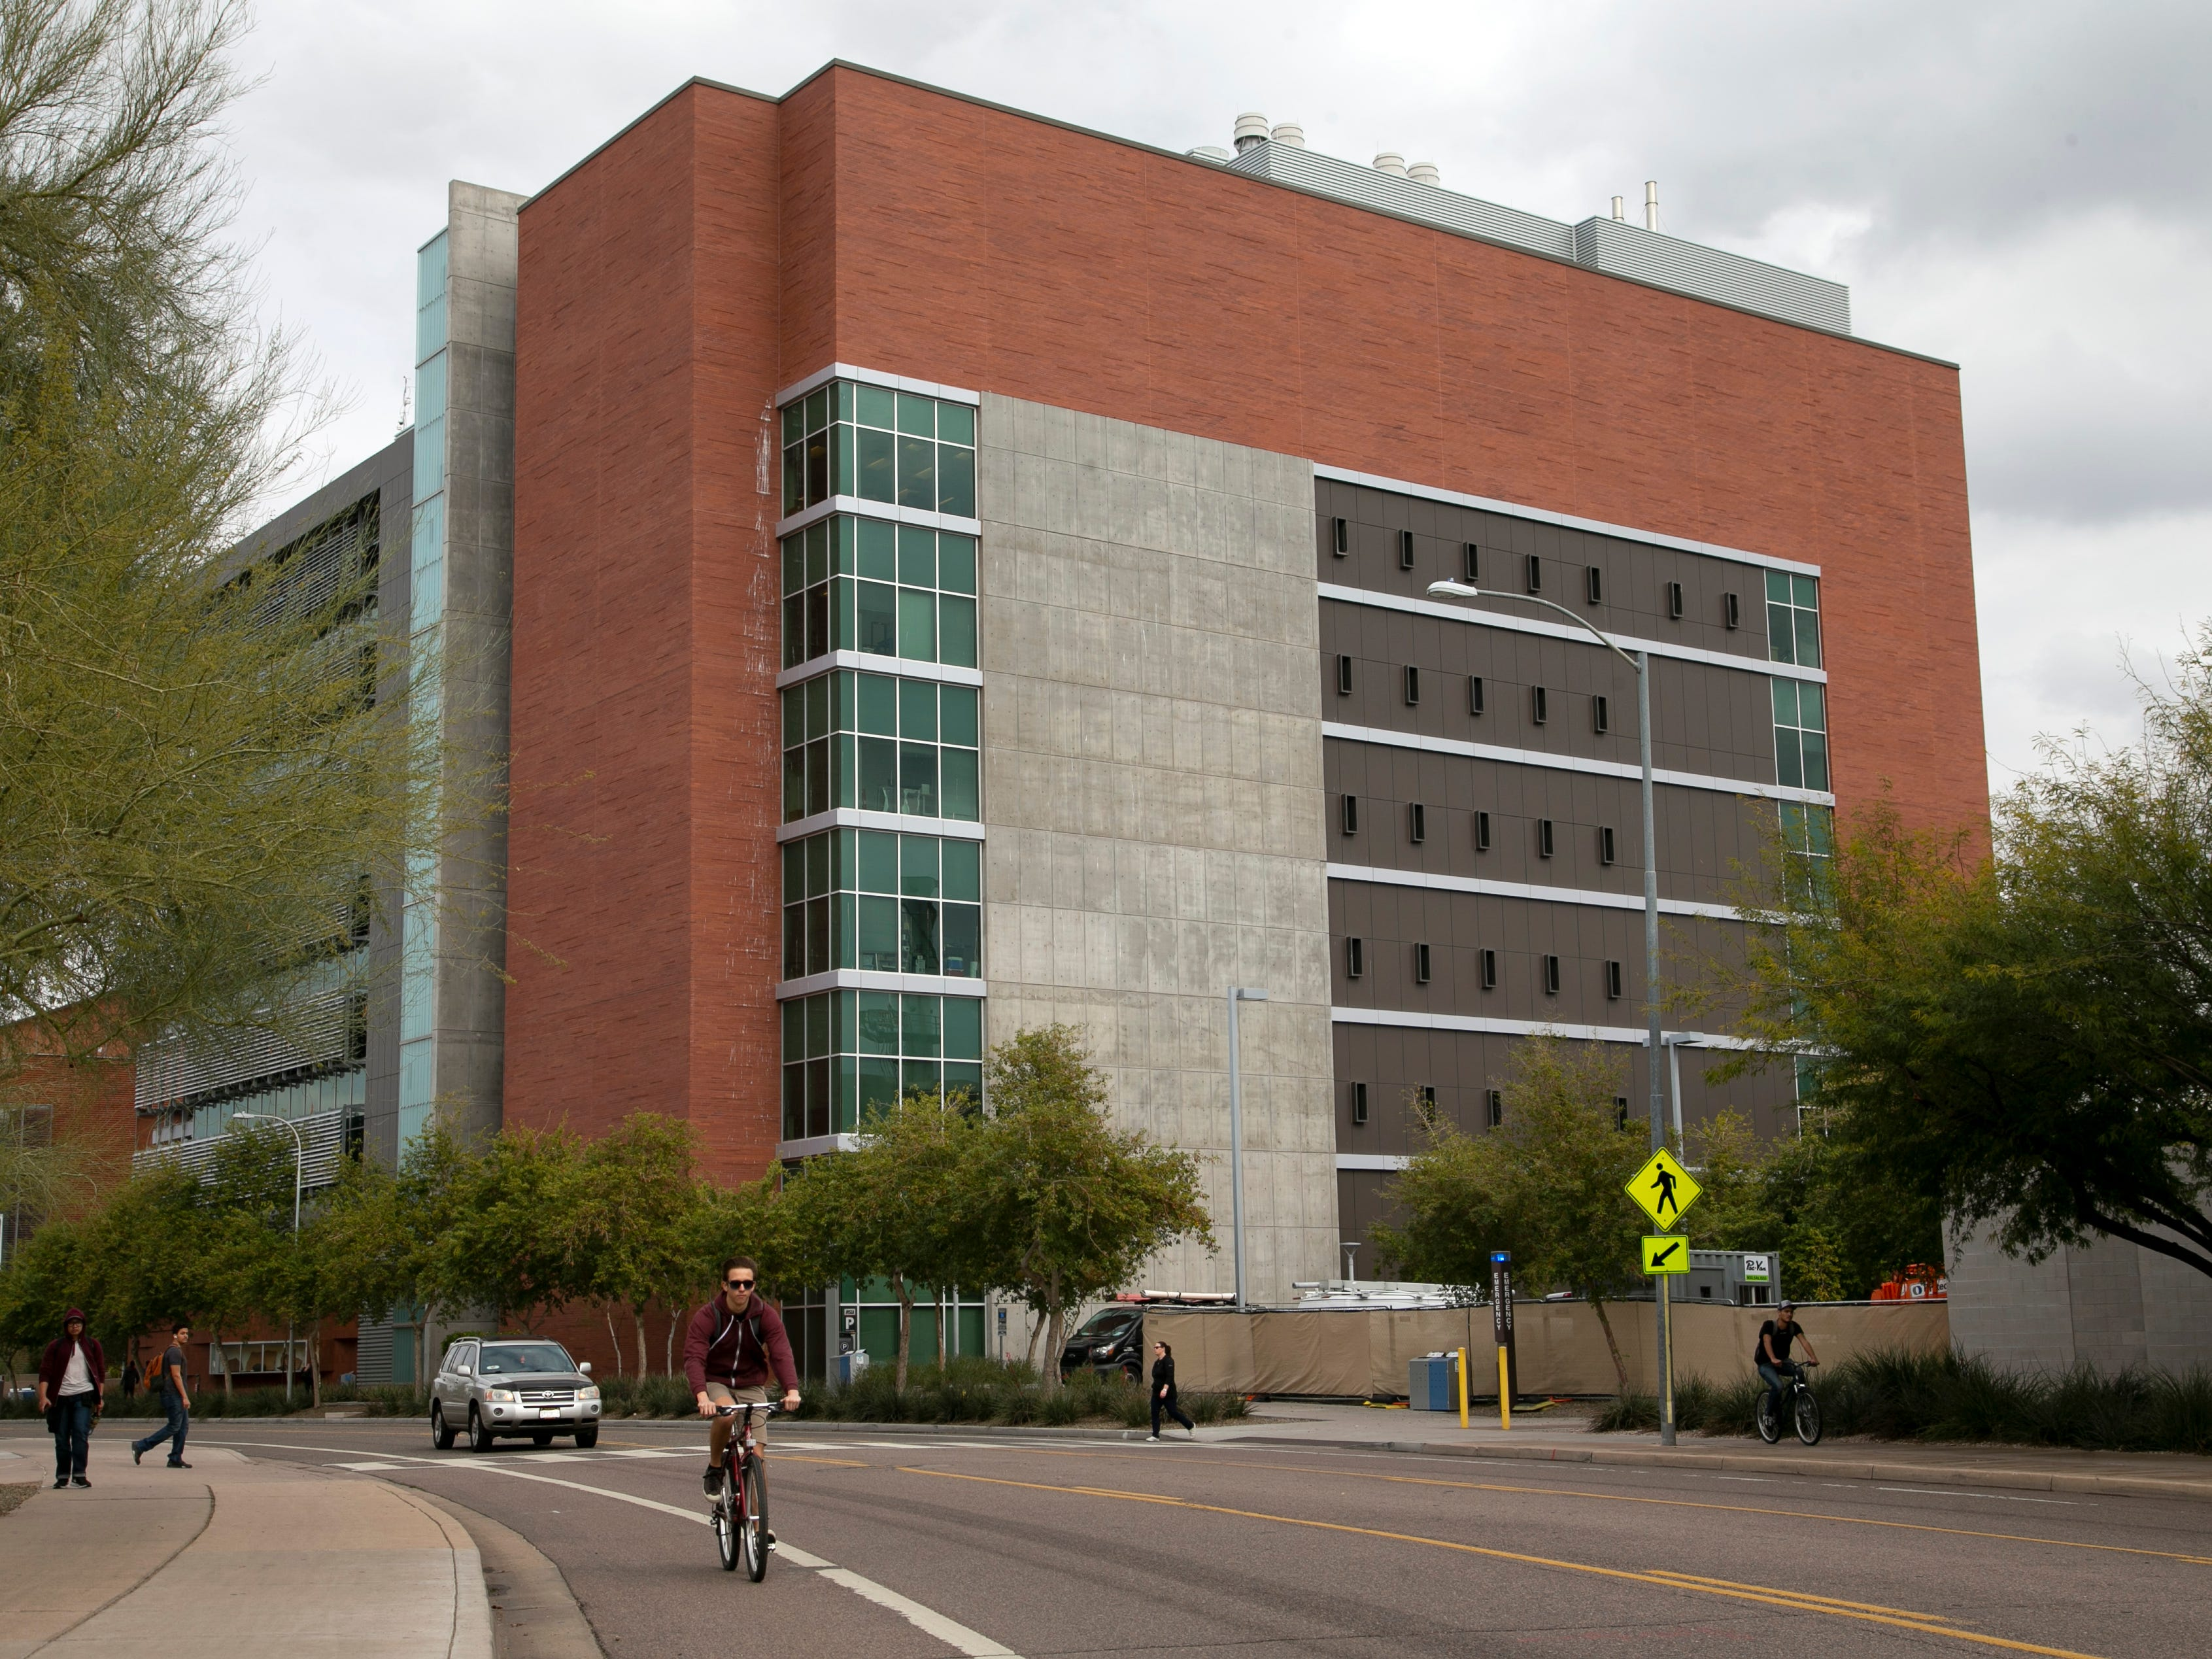 Interdisciplinary Science and Technology Building 4 on ASU's main campus Tempe as seen on February 15, 2019. It opened in 2012.